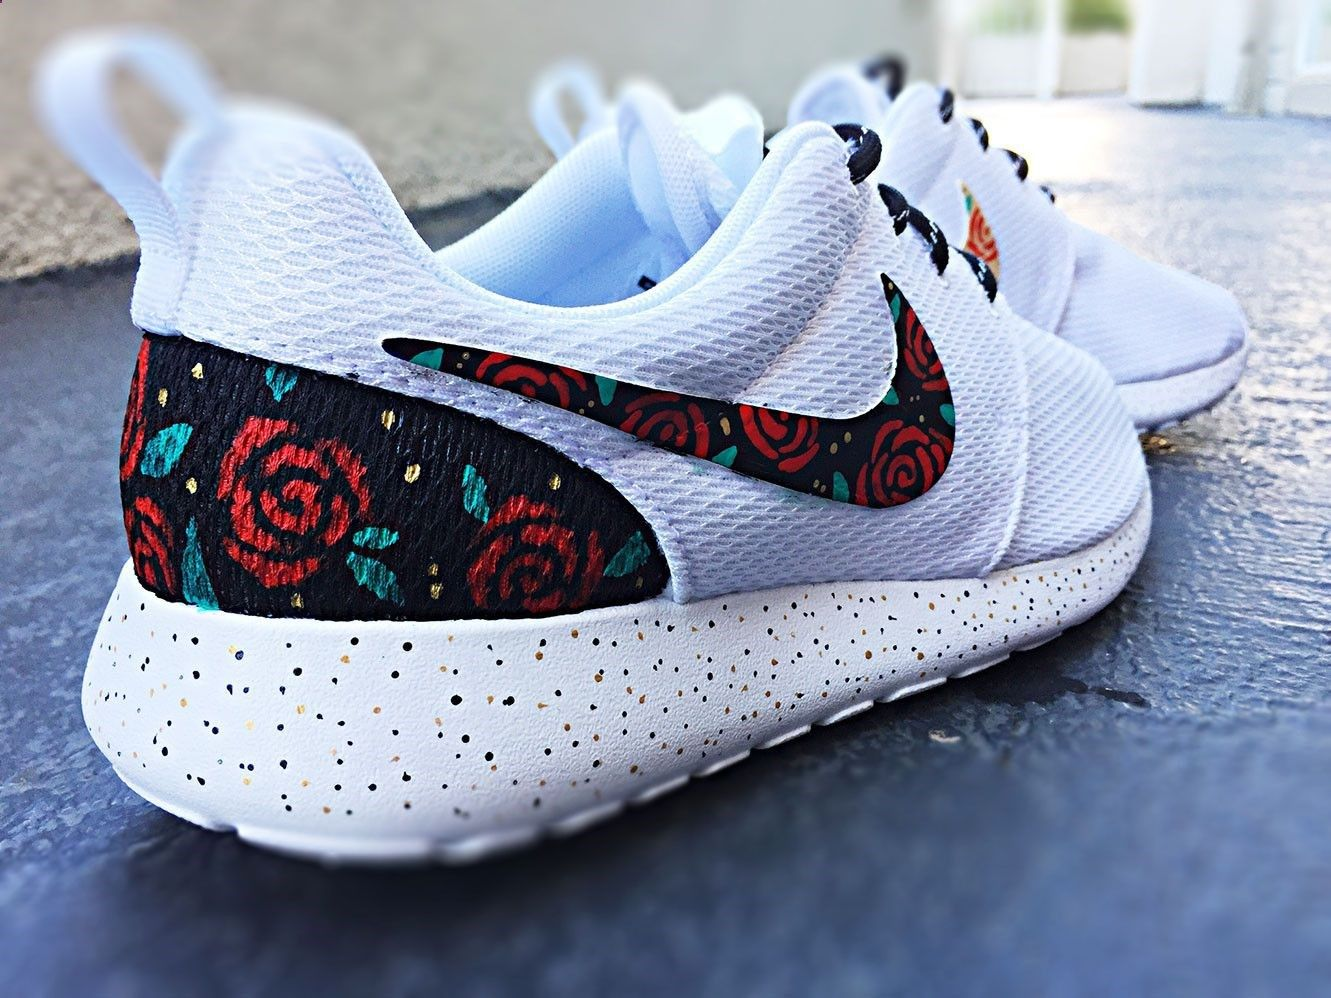 Custom Nike Roshe Run Rose design, floral custom roshe, Rose Gold design,  Red